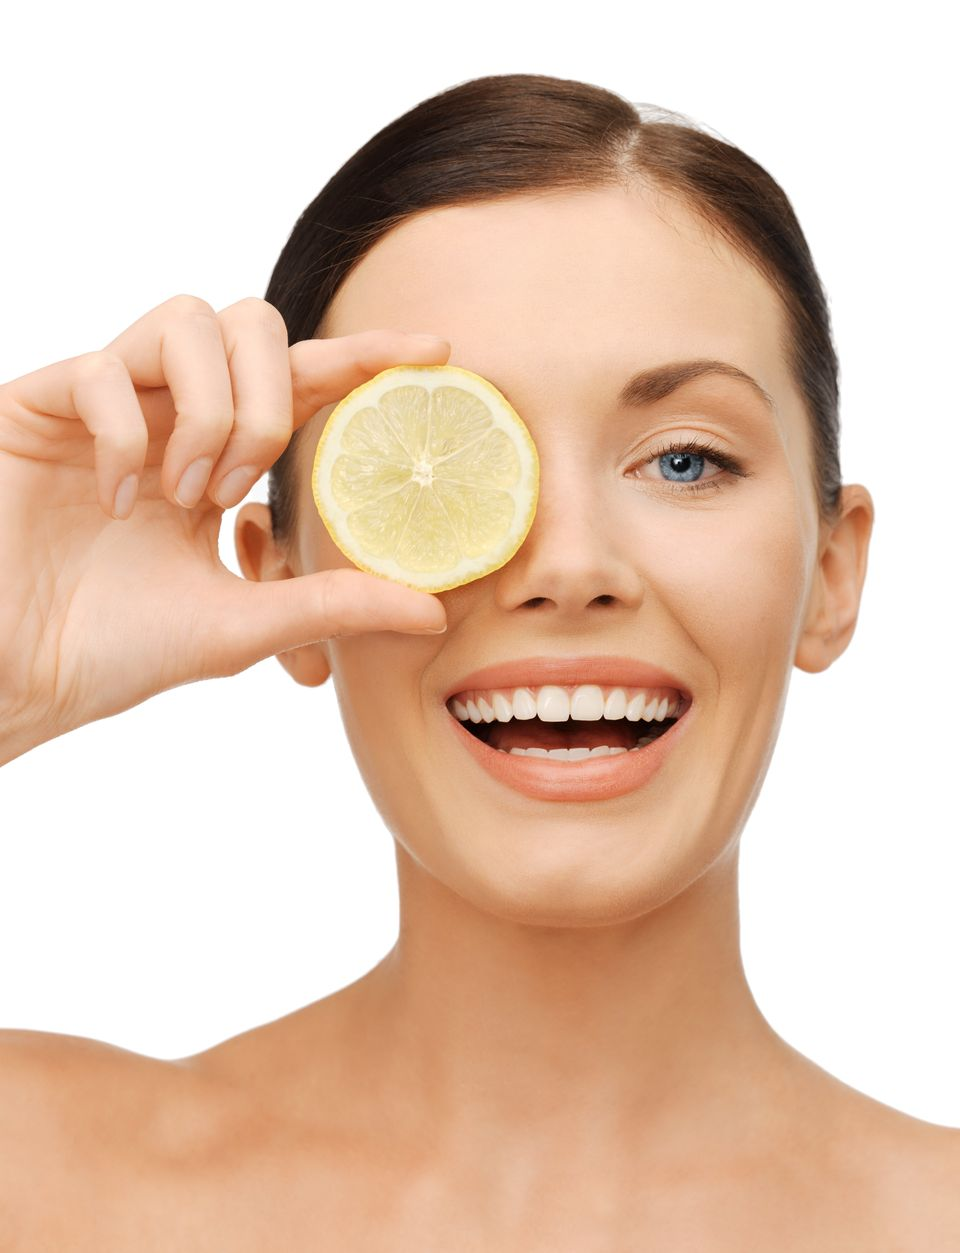 Lemon helps the liver to dump toxins by stimulating its natural enzymes. This promotes good health and helps keep the skin cl